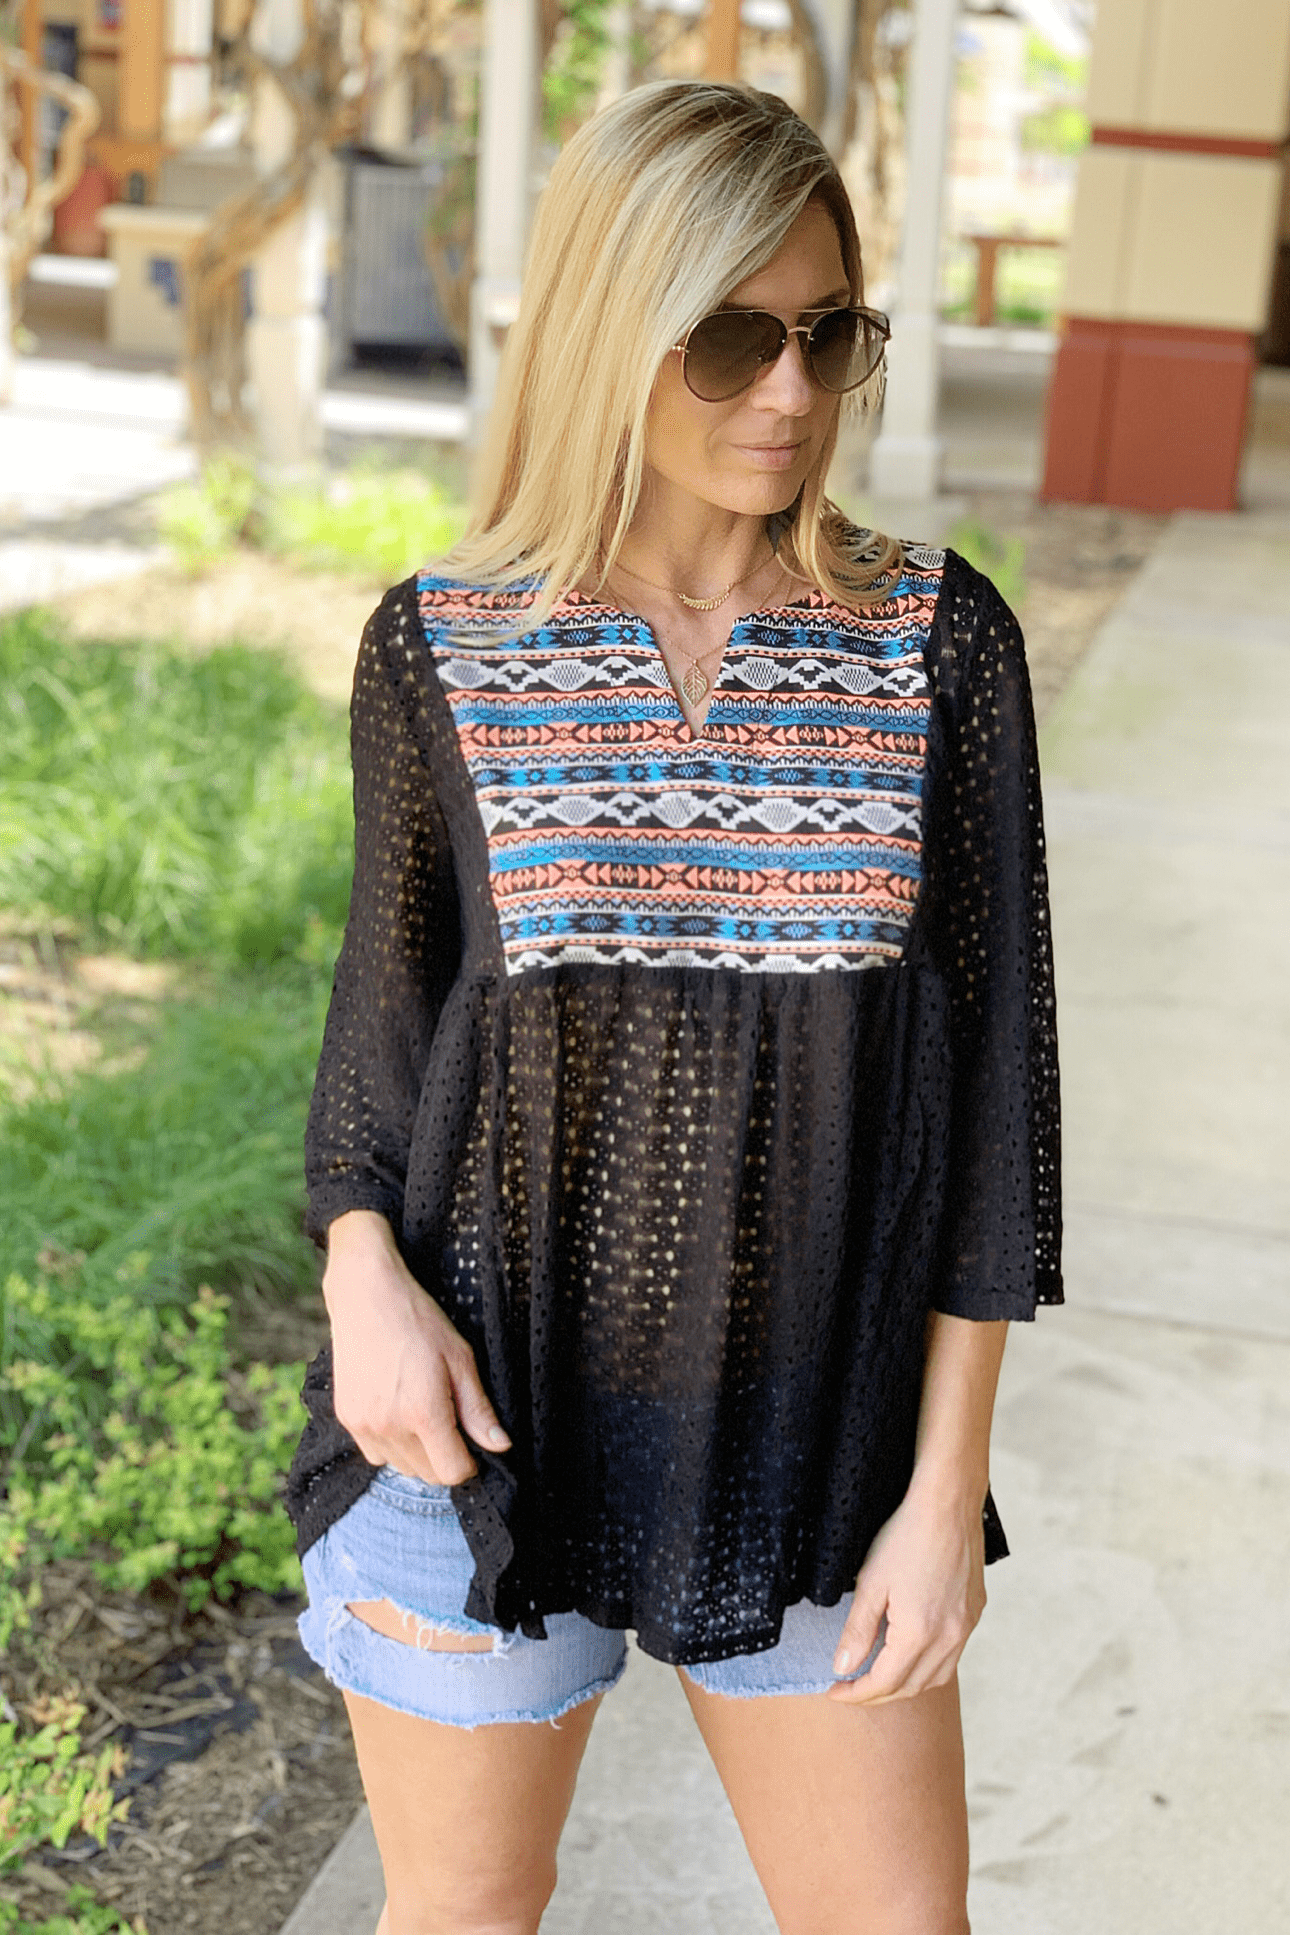 BOHEMIAN SEMI SHEER LACE TUNIC-BLACK - Infinity Raine